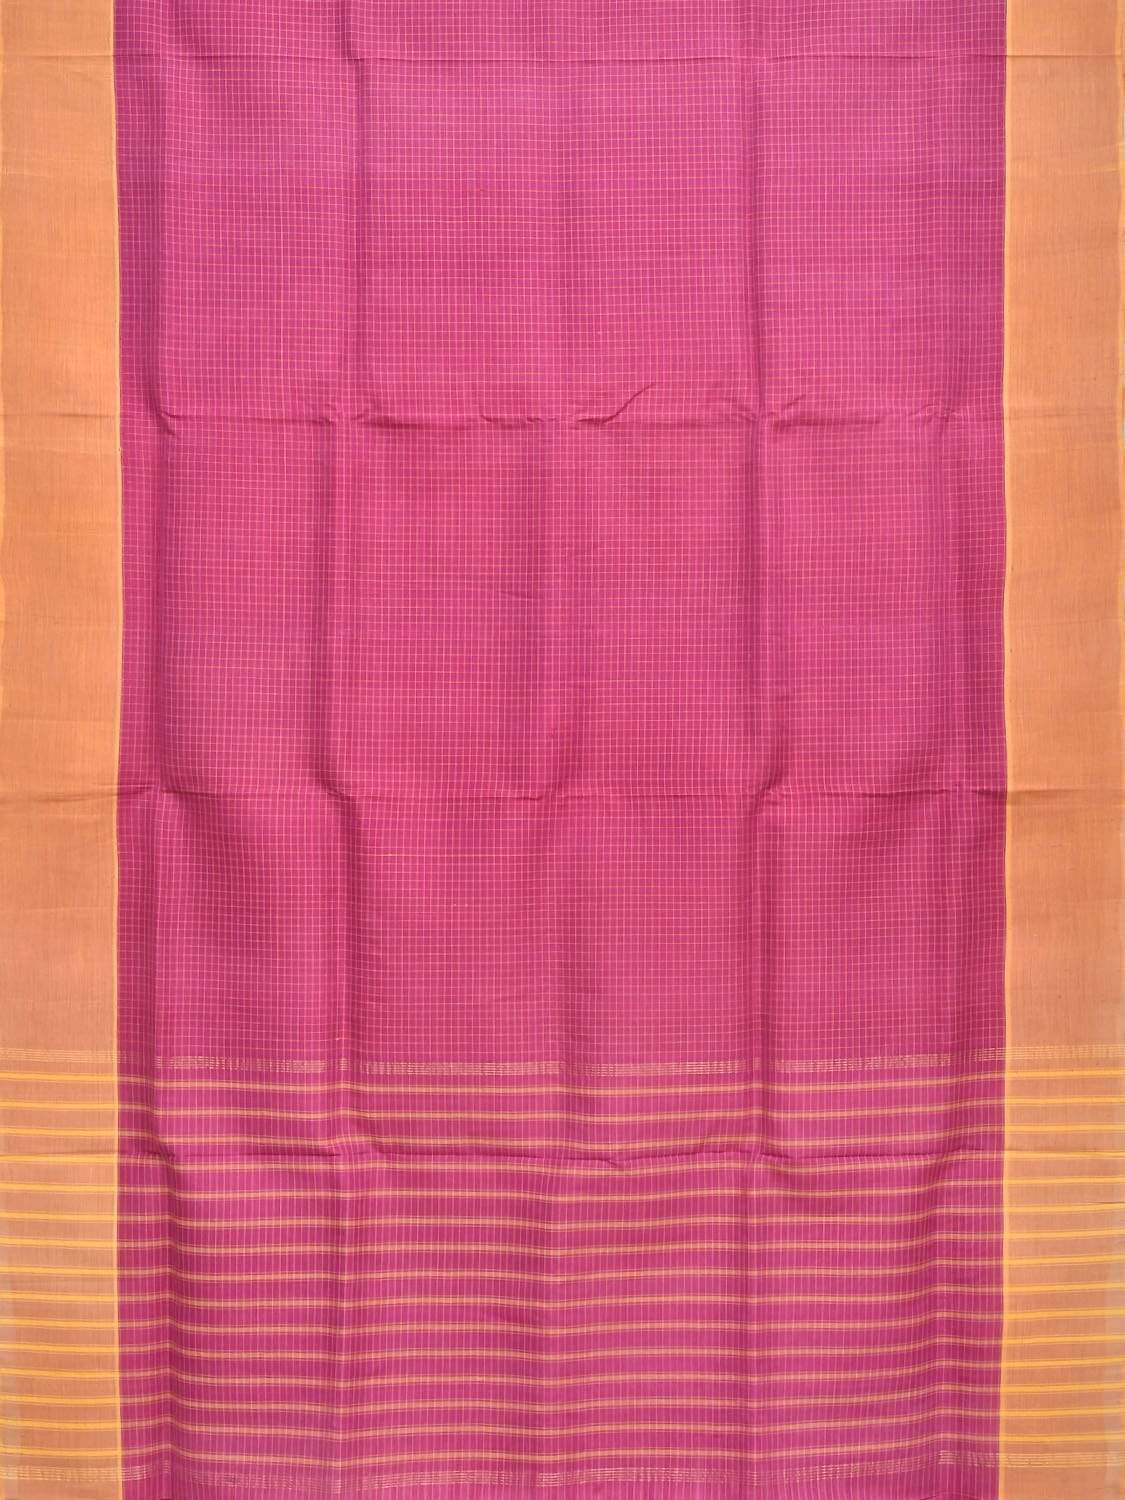 Pink Tussar Cotton Handloom Saree with All Over Checks Design o0273